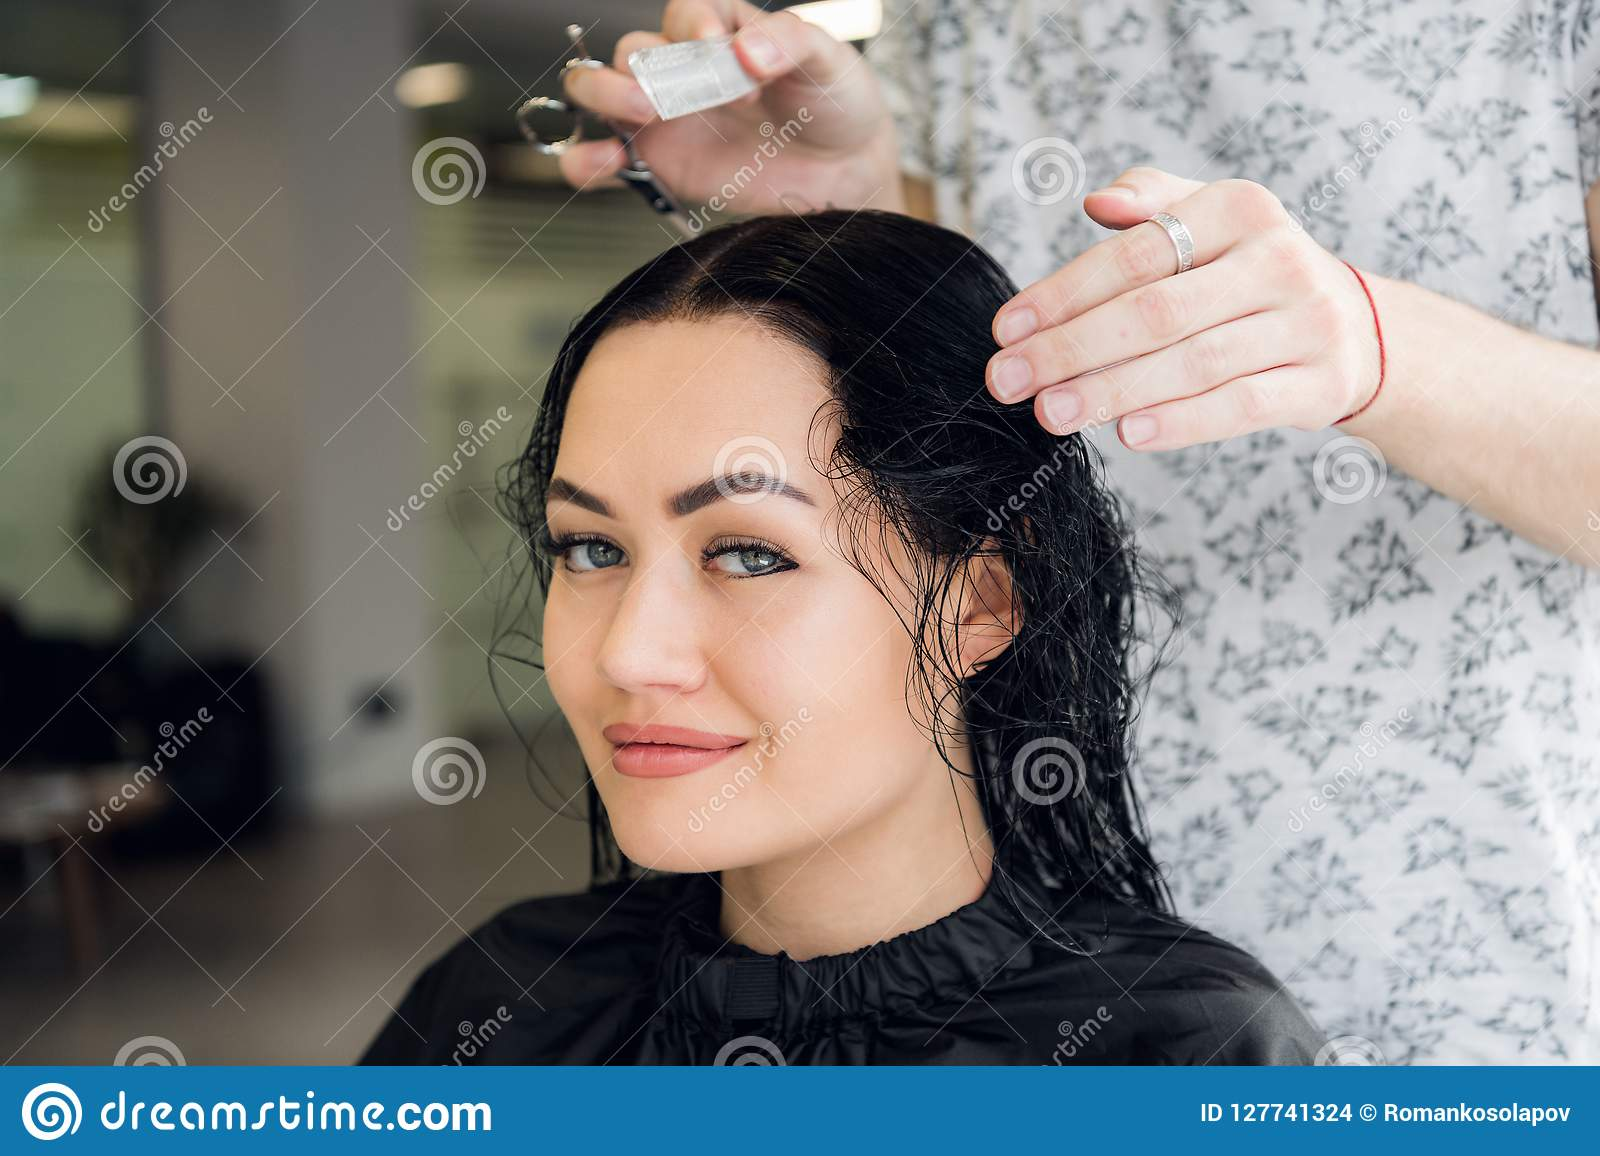 Attractive Woman Smiling While Having A Consultation With Her Hair